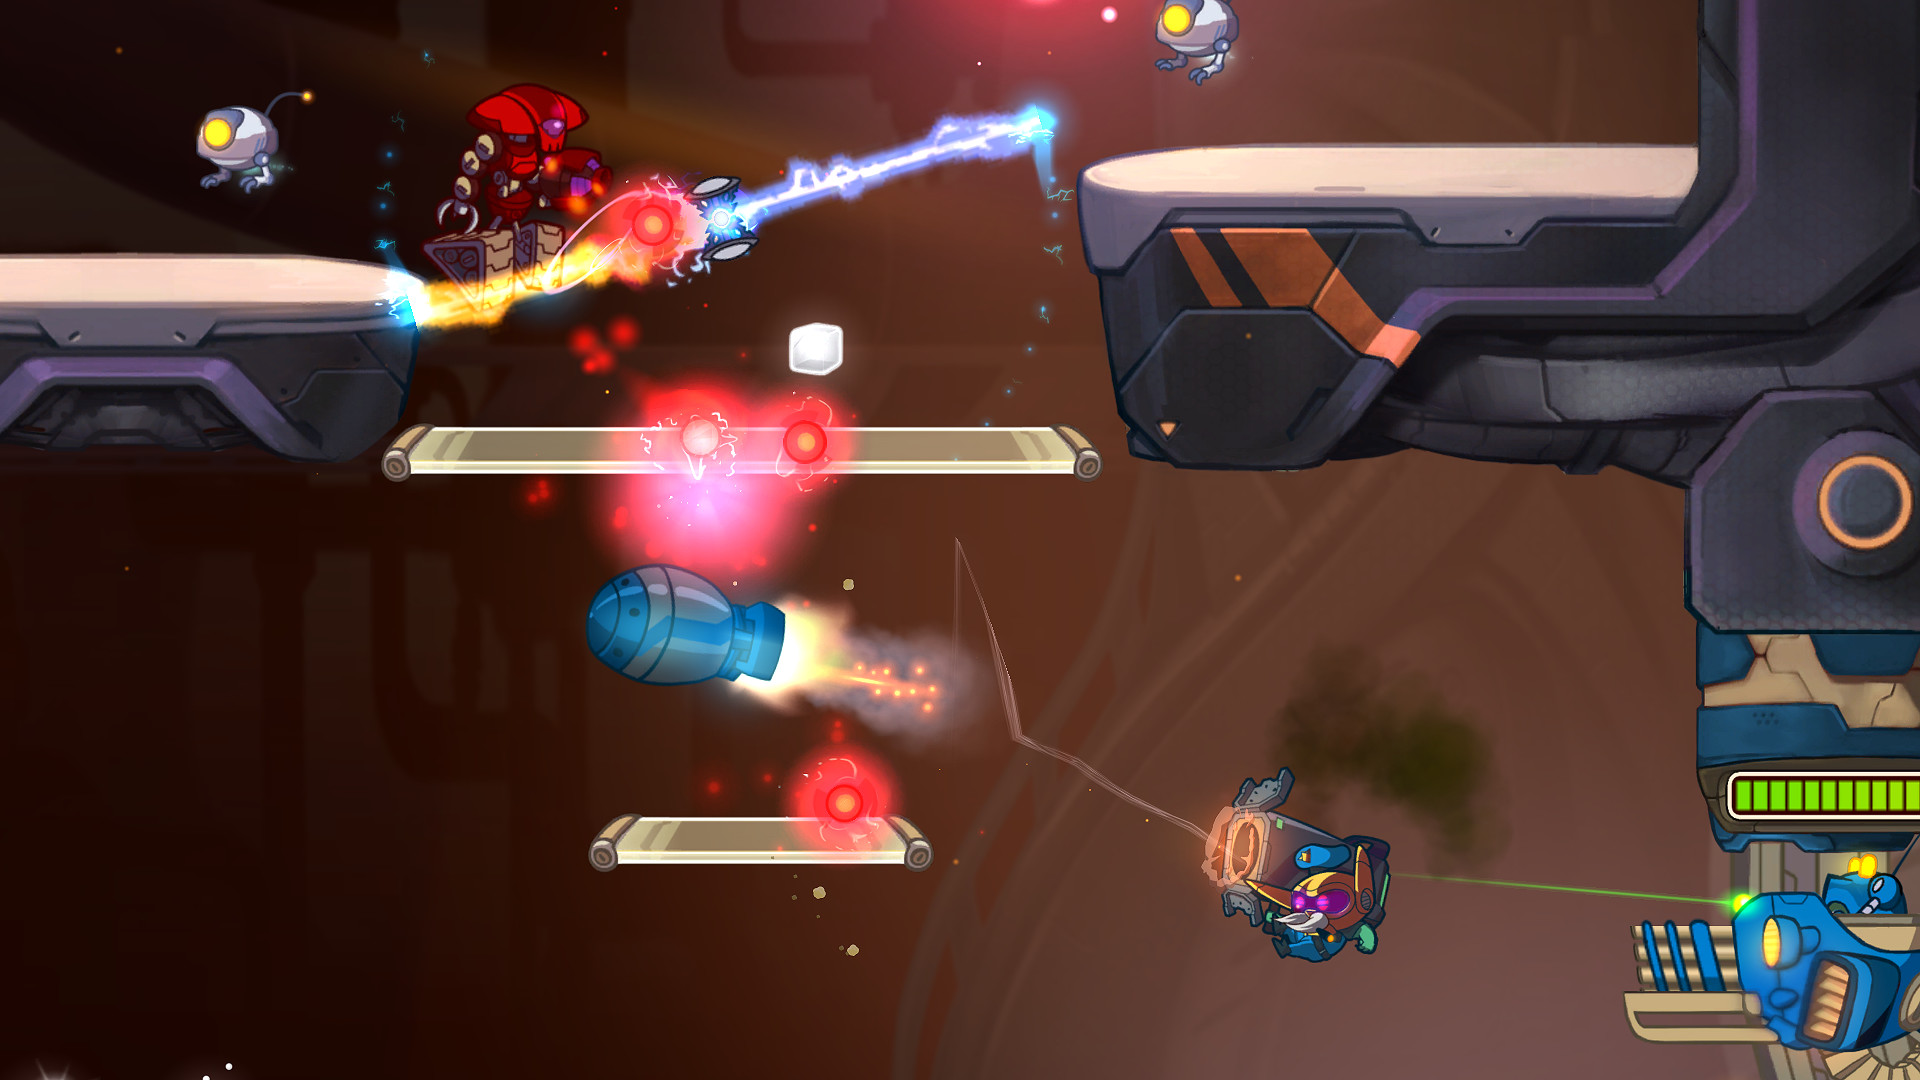 Commander Rocket - Awesomenauts Character screenshot